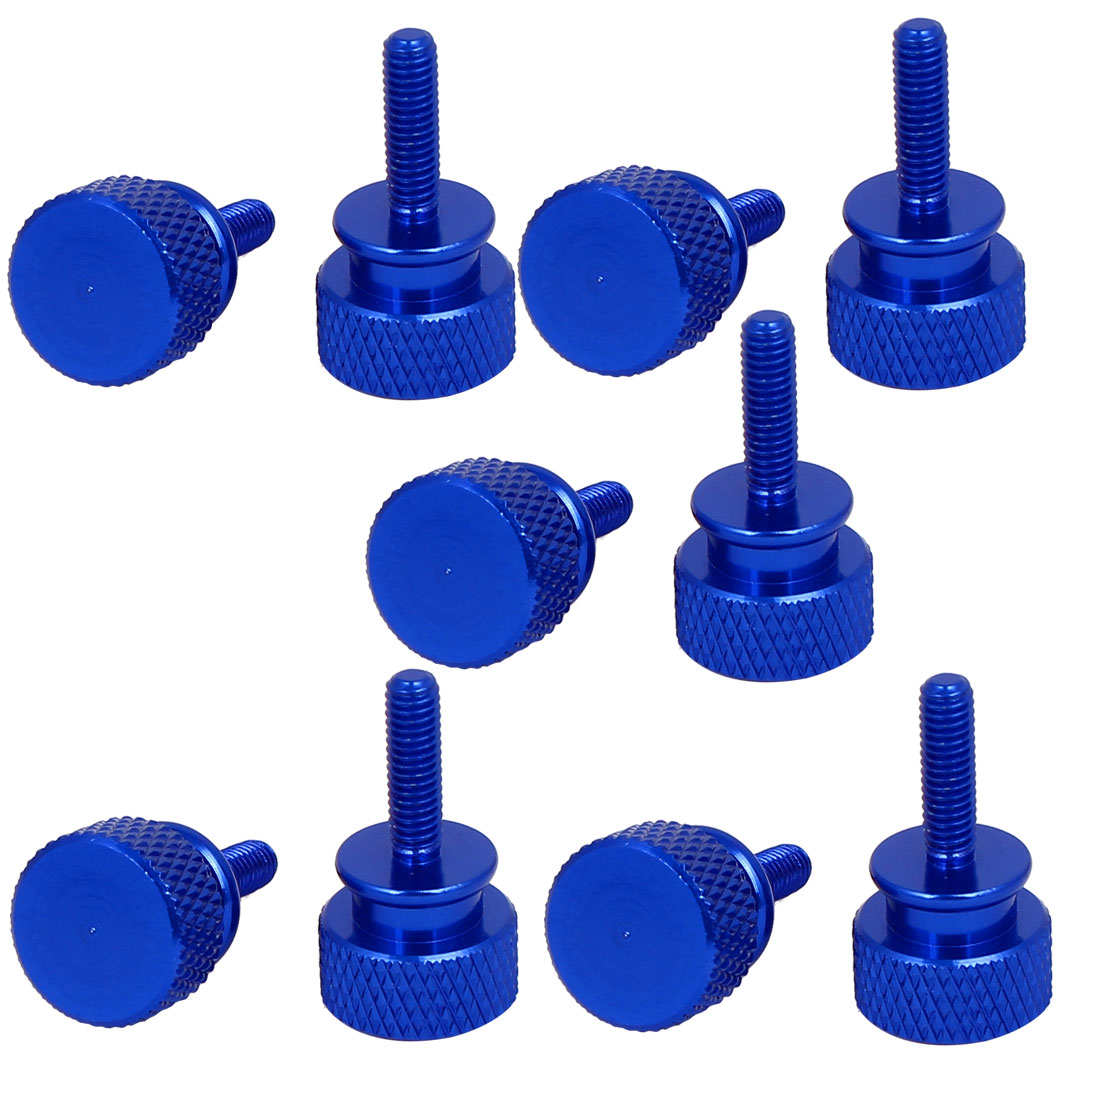 Computer PC Case Fully Threaded Knurled Thumb Screws Royal Blue M3.5x12mm 10pcs